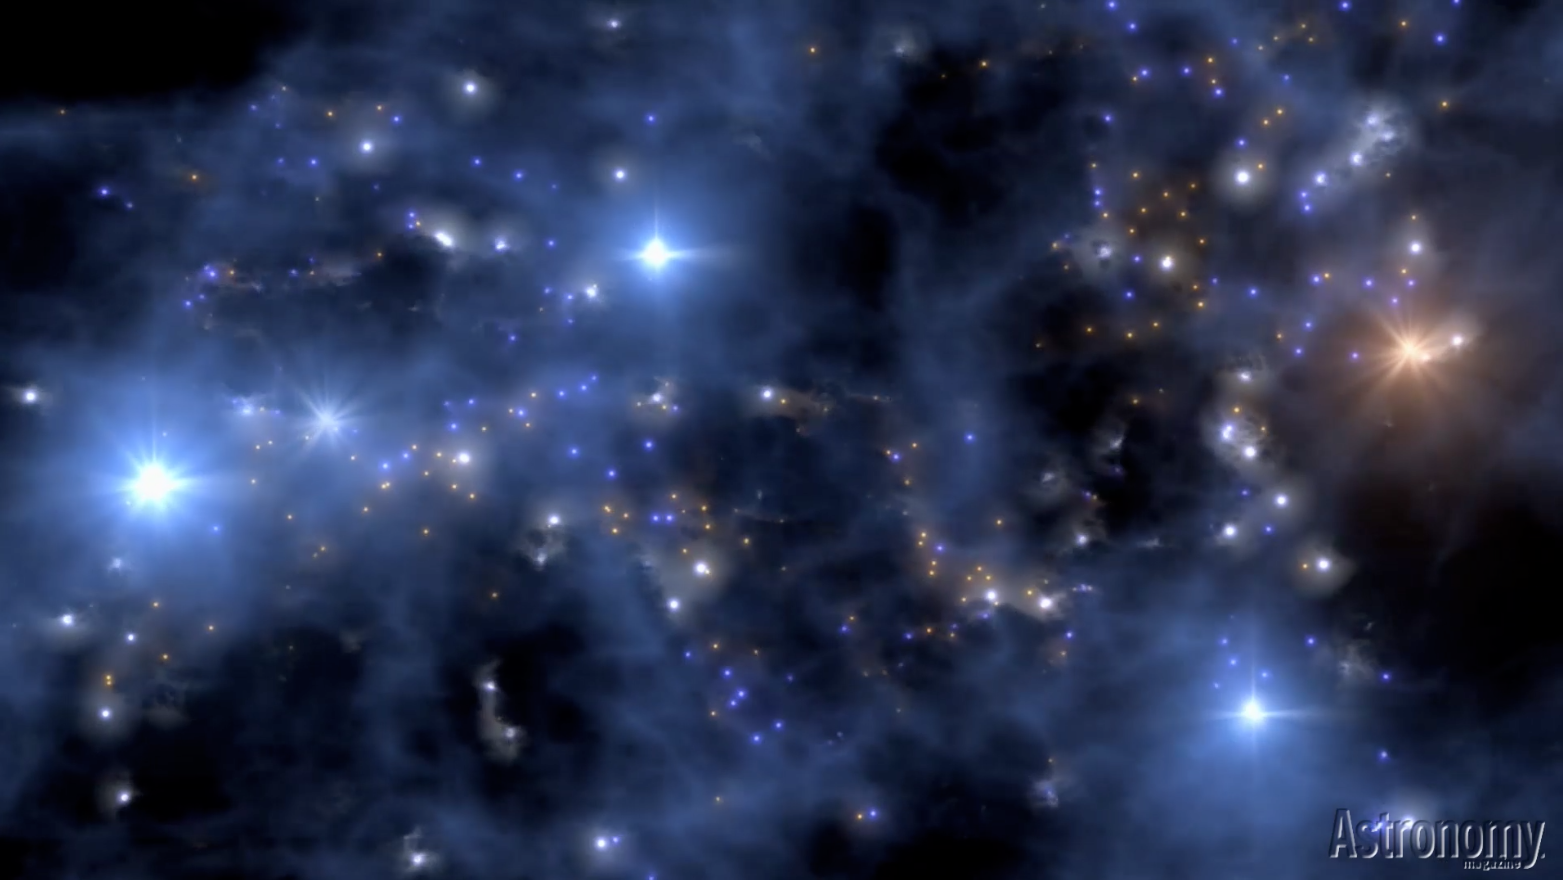 While developed to explain the large-scale structure of the universe, the theory of a short period of extremely rapid expansion in the early cosmos still lacks physical evidence today.